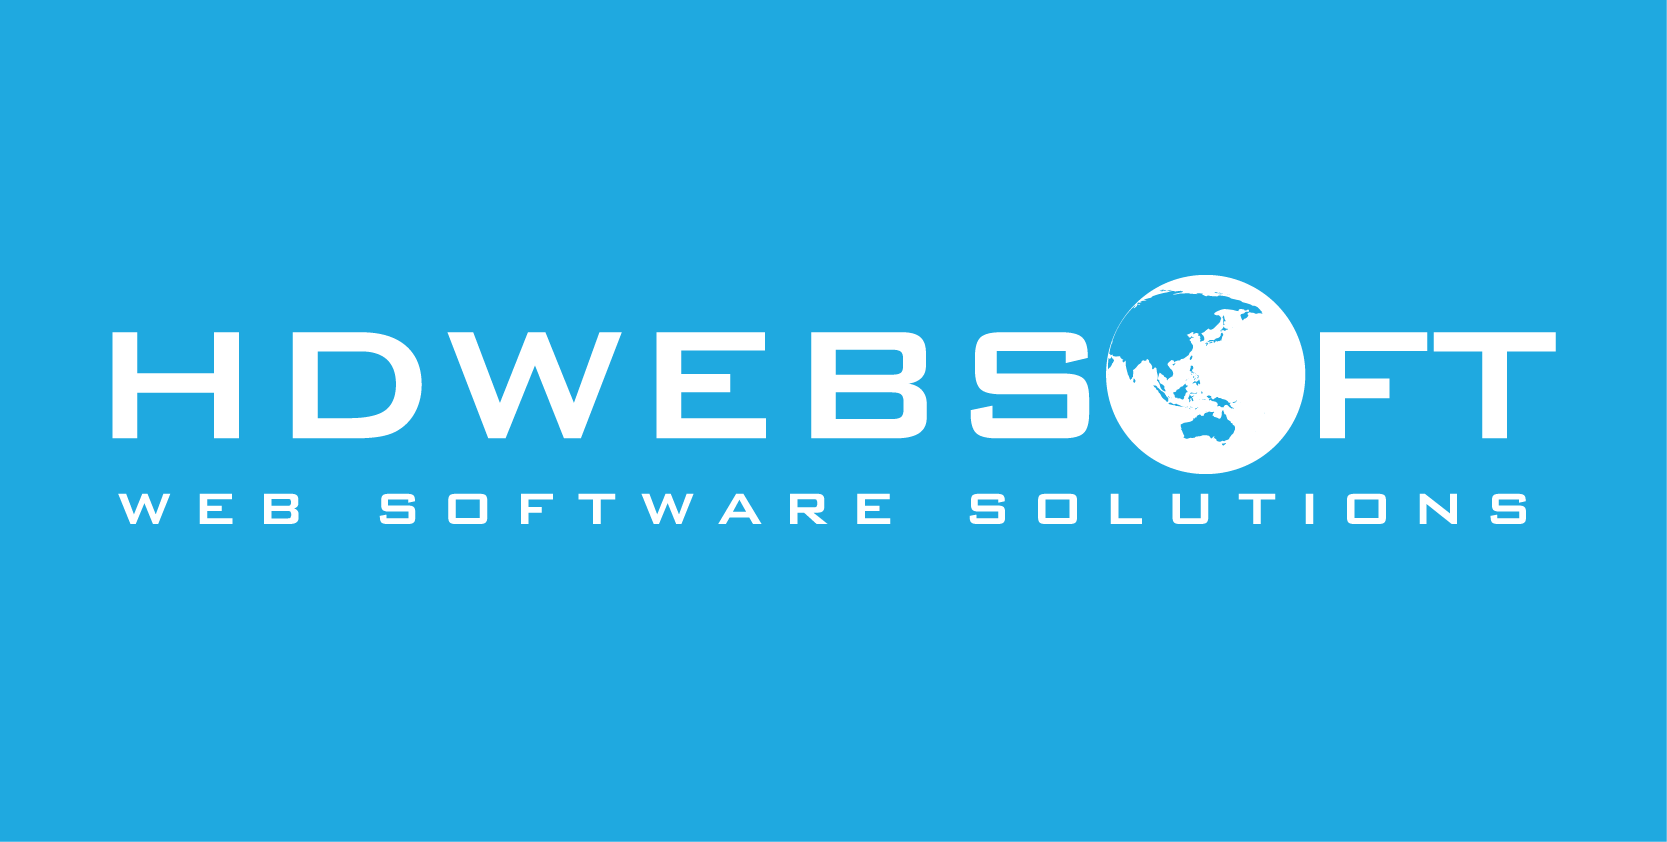 HDWebsoft company, offshoring, dedicate outsourcing partner